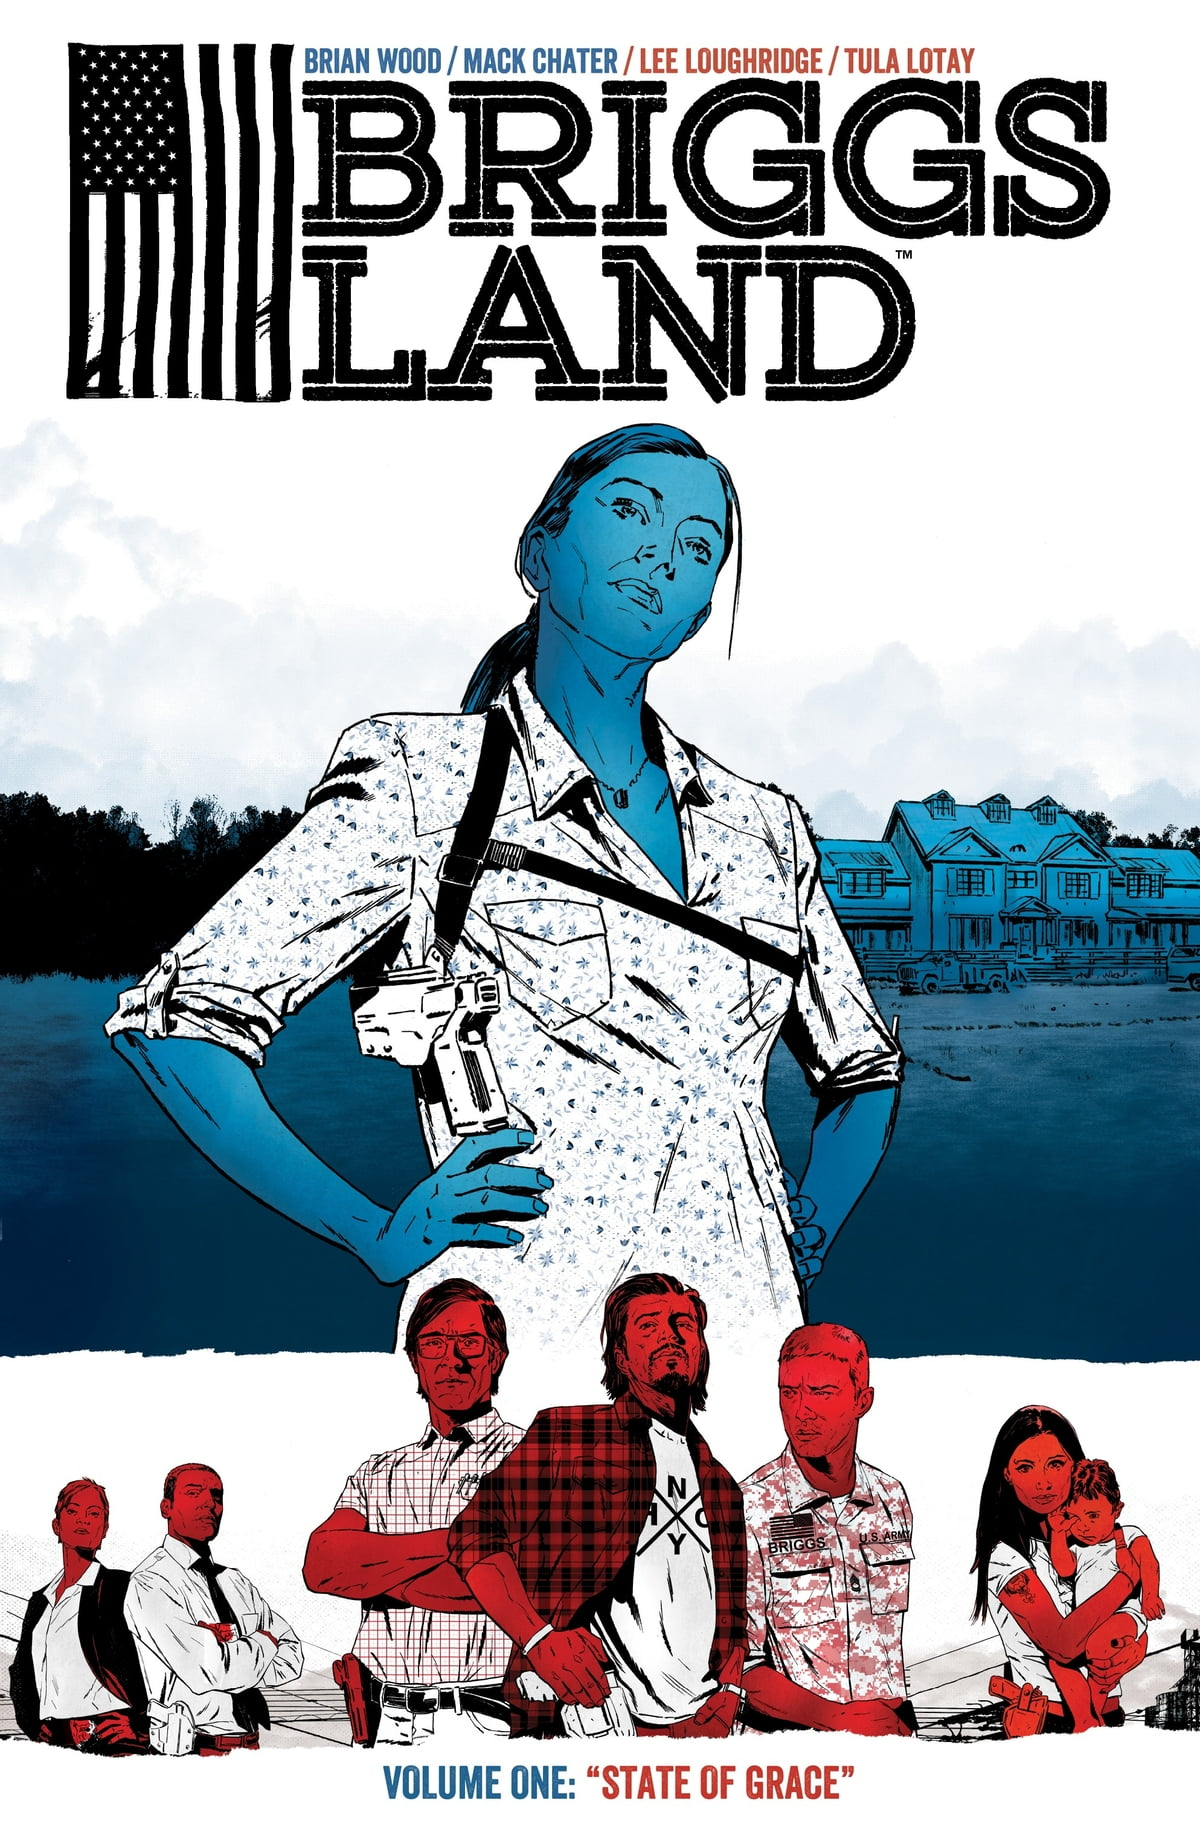 Briggs Land Volume 1: State of Grace eBook by Brian Wood - 9781630086725 |  Rakuten Kobo